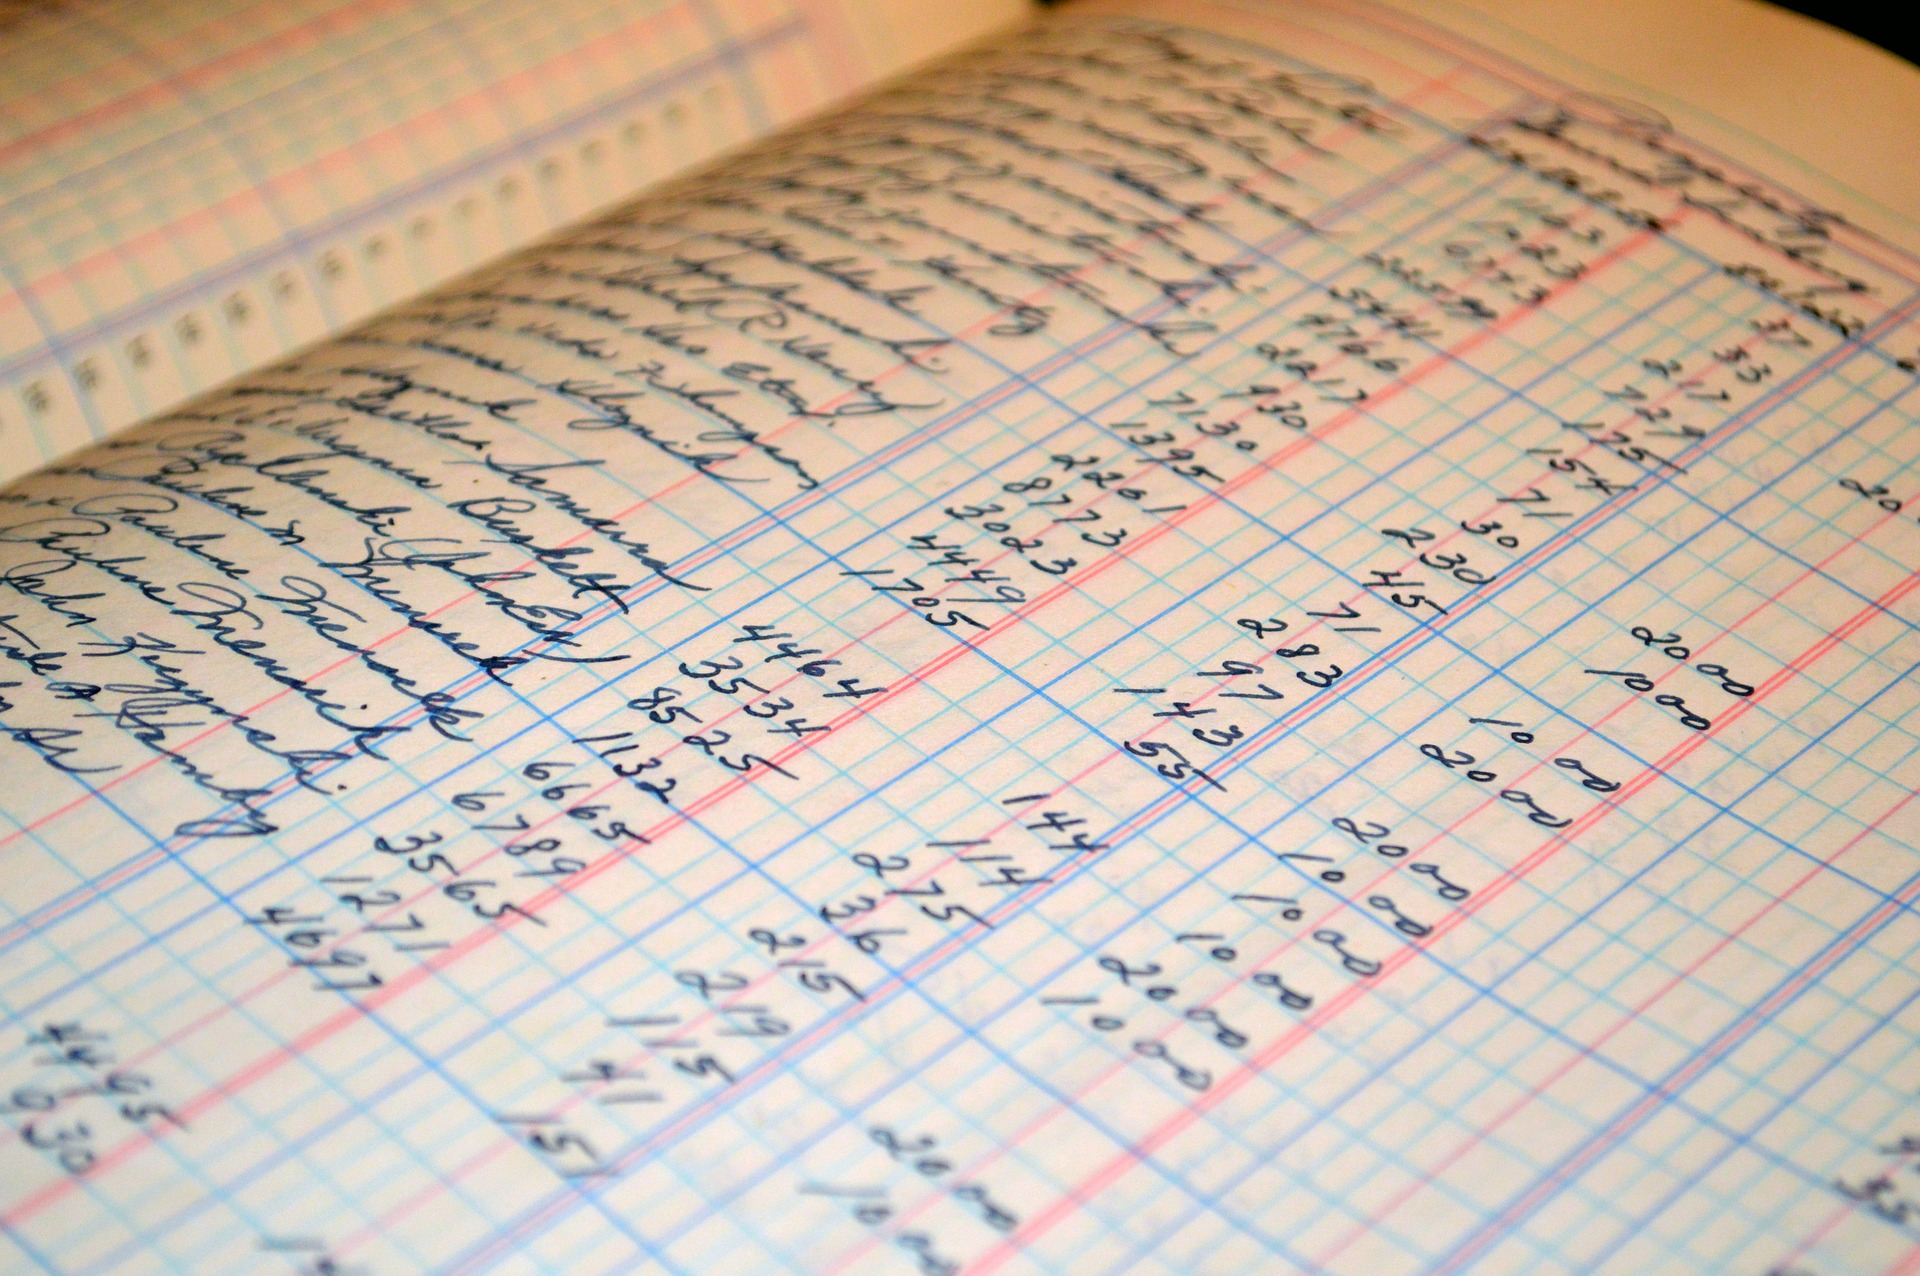 Nonprofit Financial Statements: How To Generate Compliant Reports